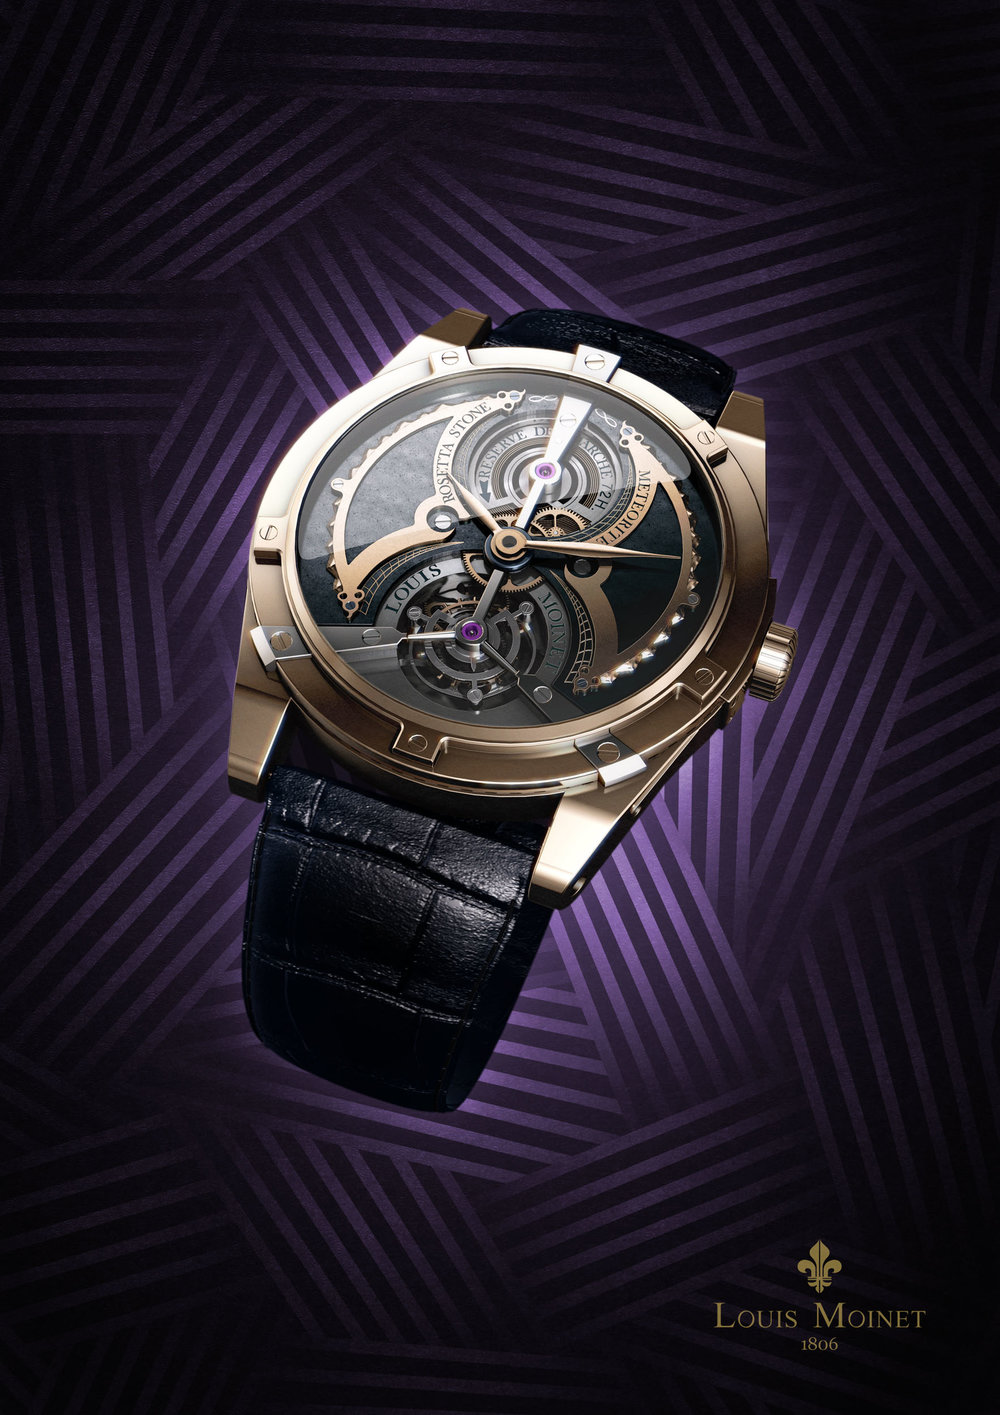 BOOM_CGI_PRODUCT_louis-moinet-watch-purple.jpg